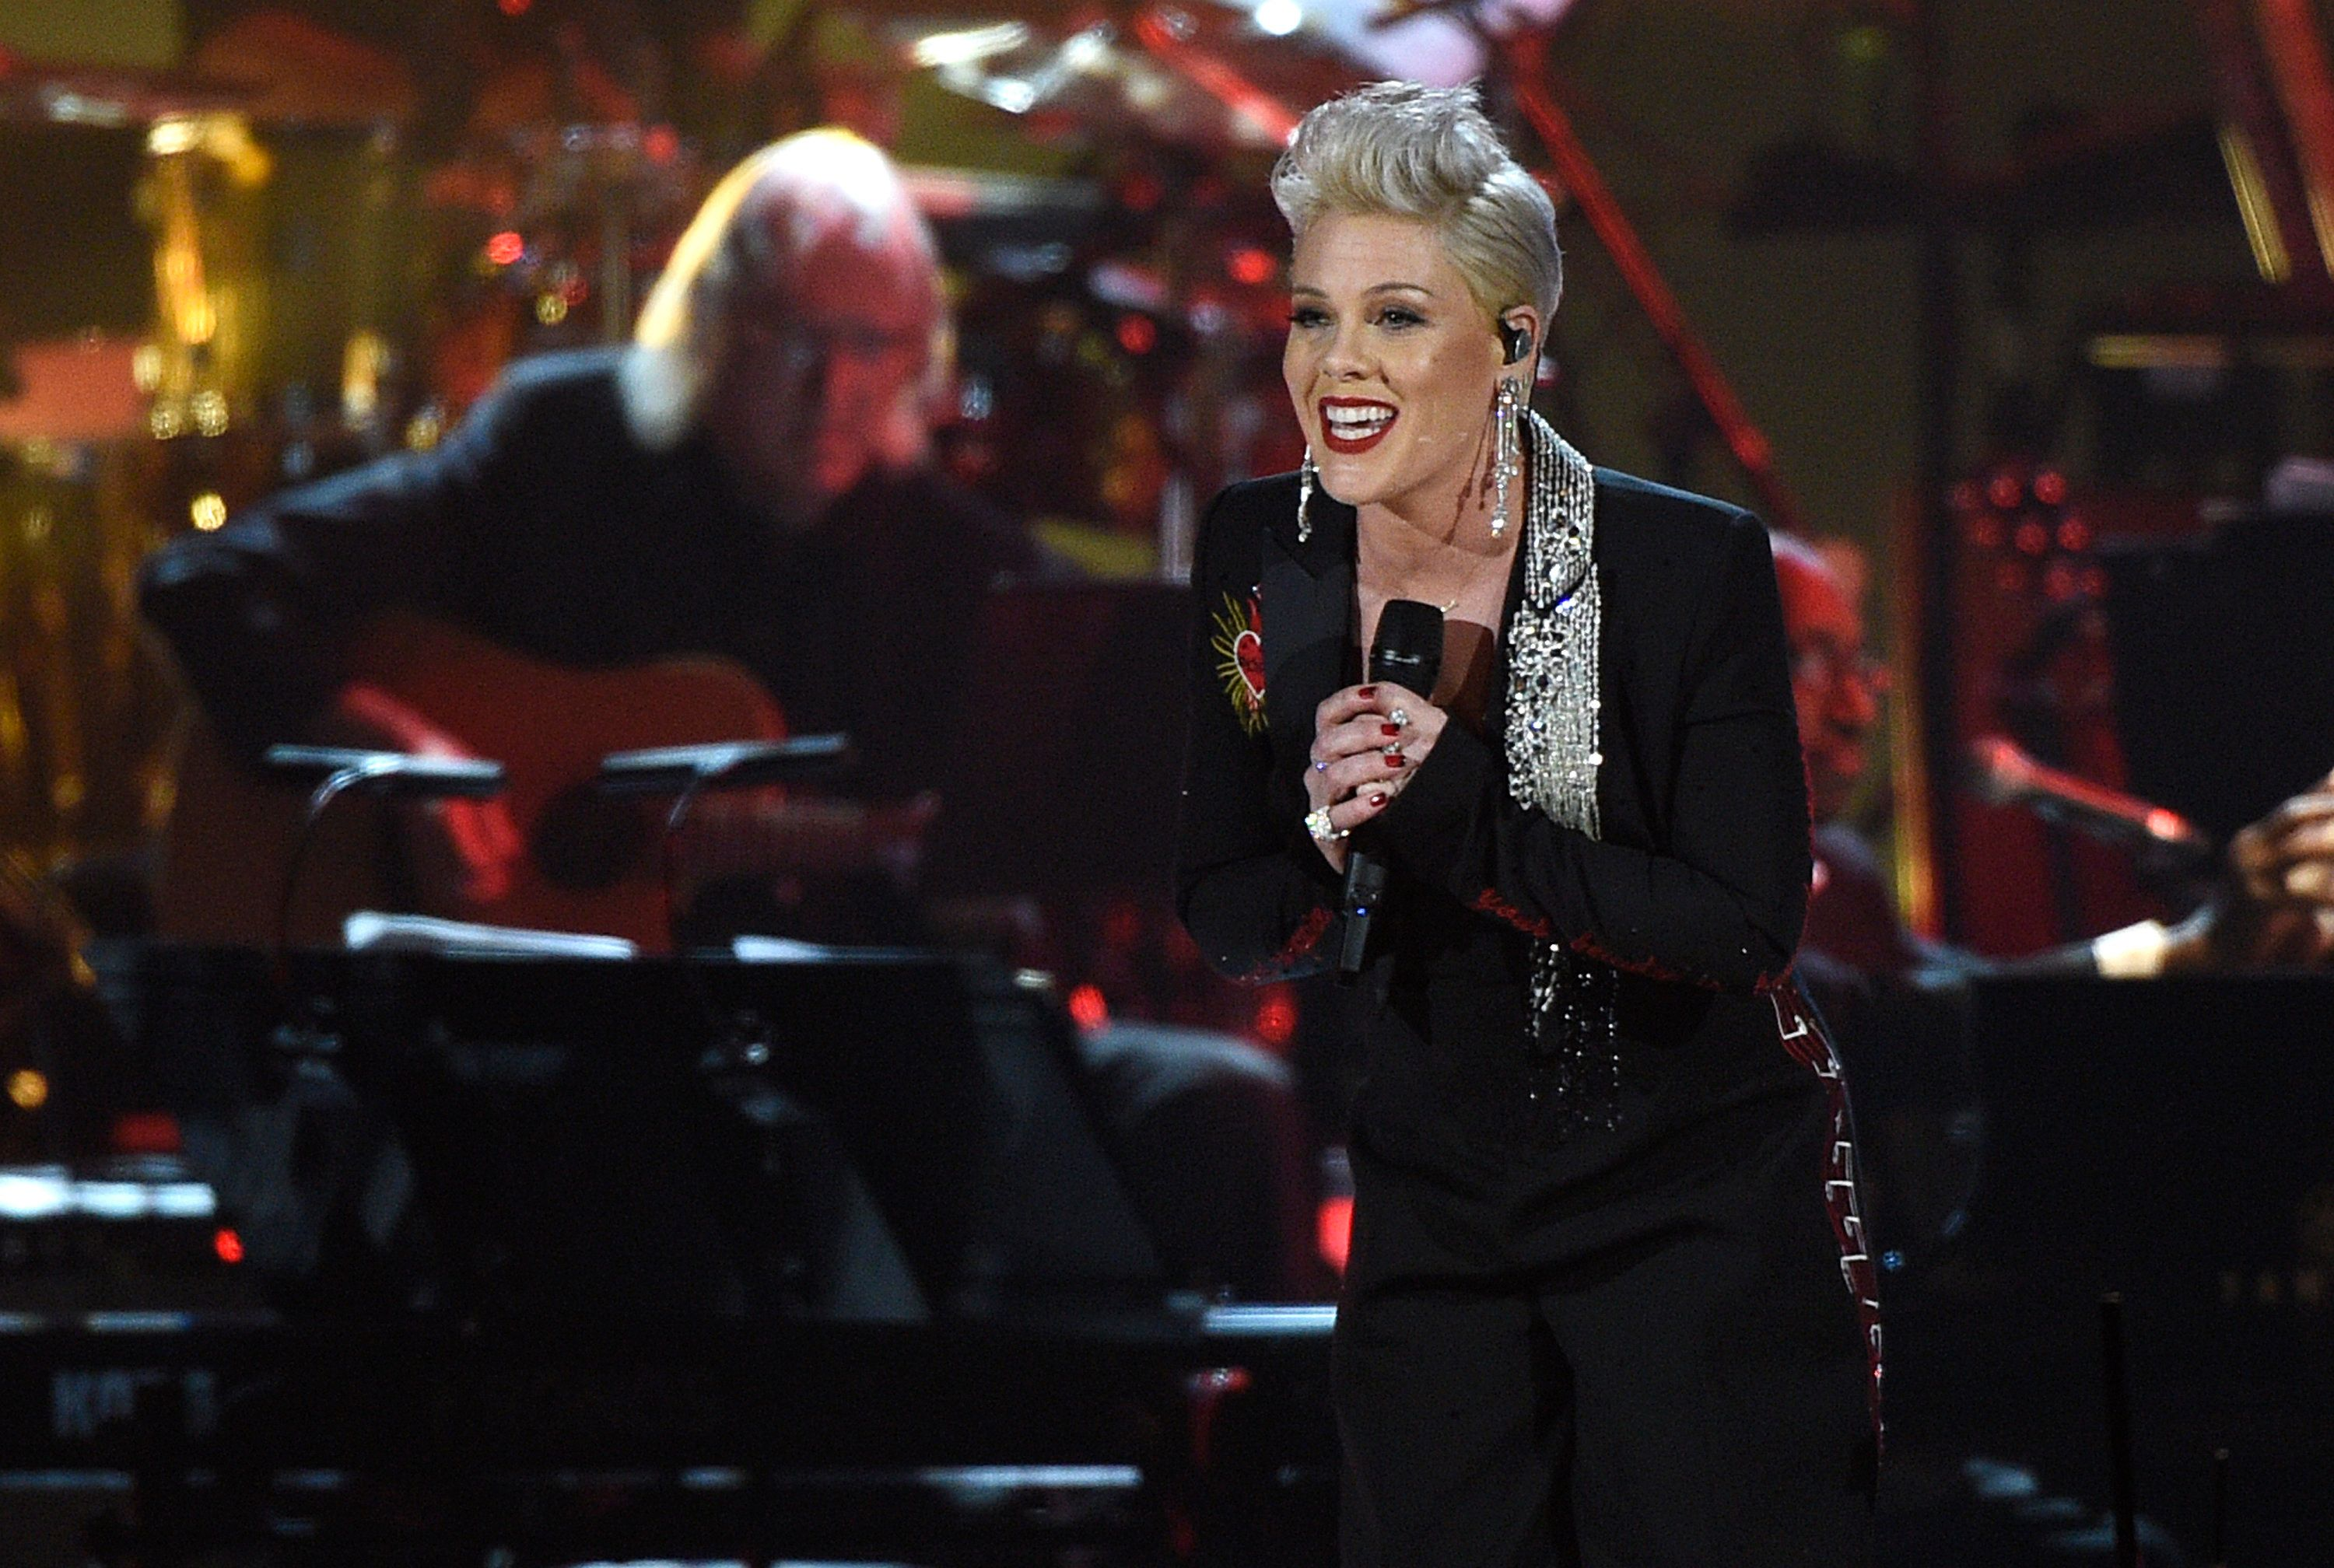 'My Favourite Kind Of Award': Pink Gets Homemade Grammys Trophy From Kids After Losing Out To